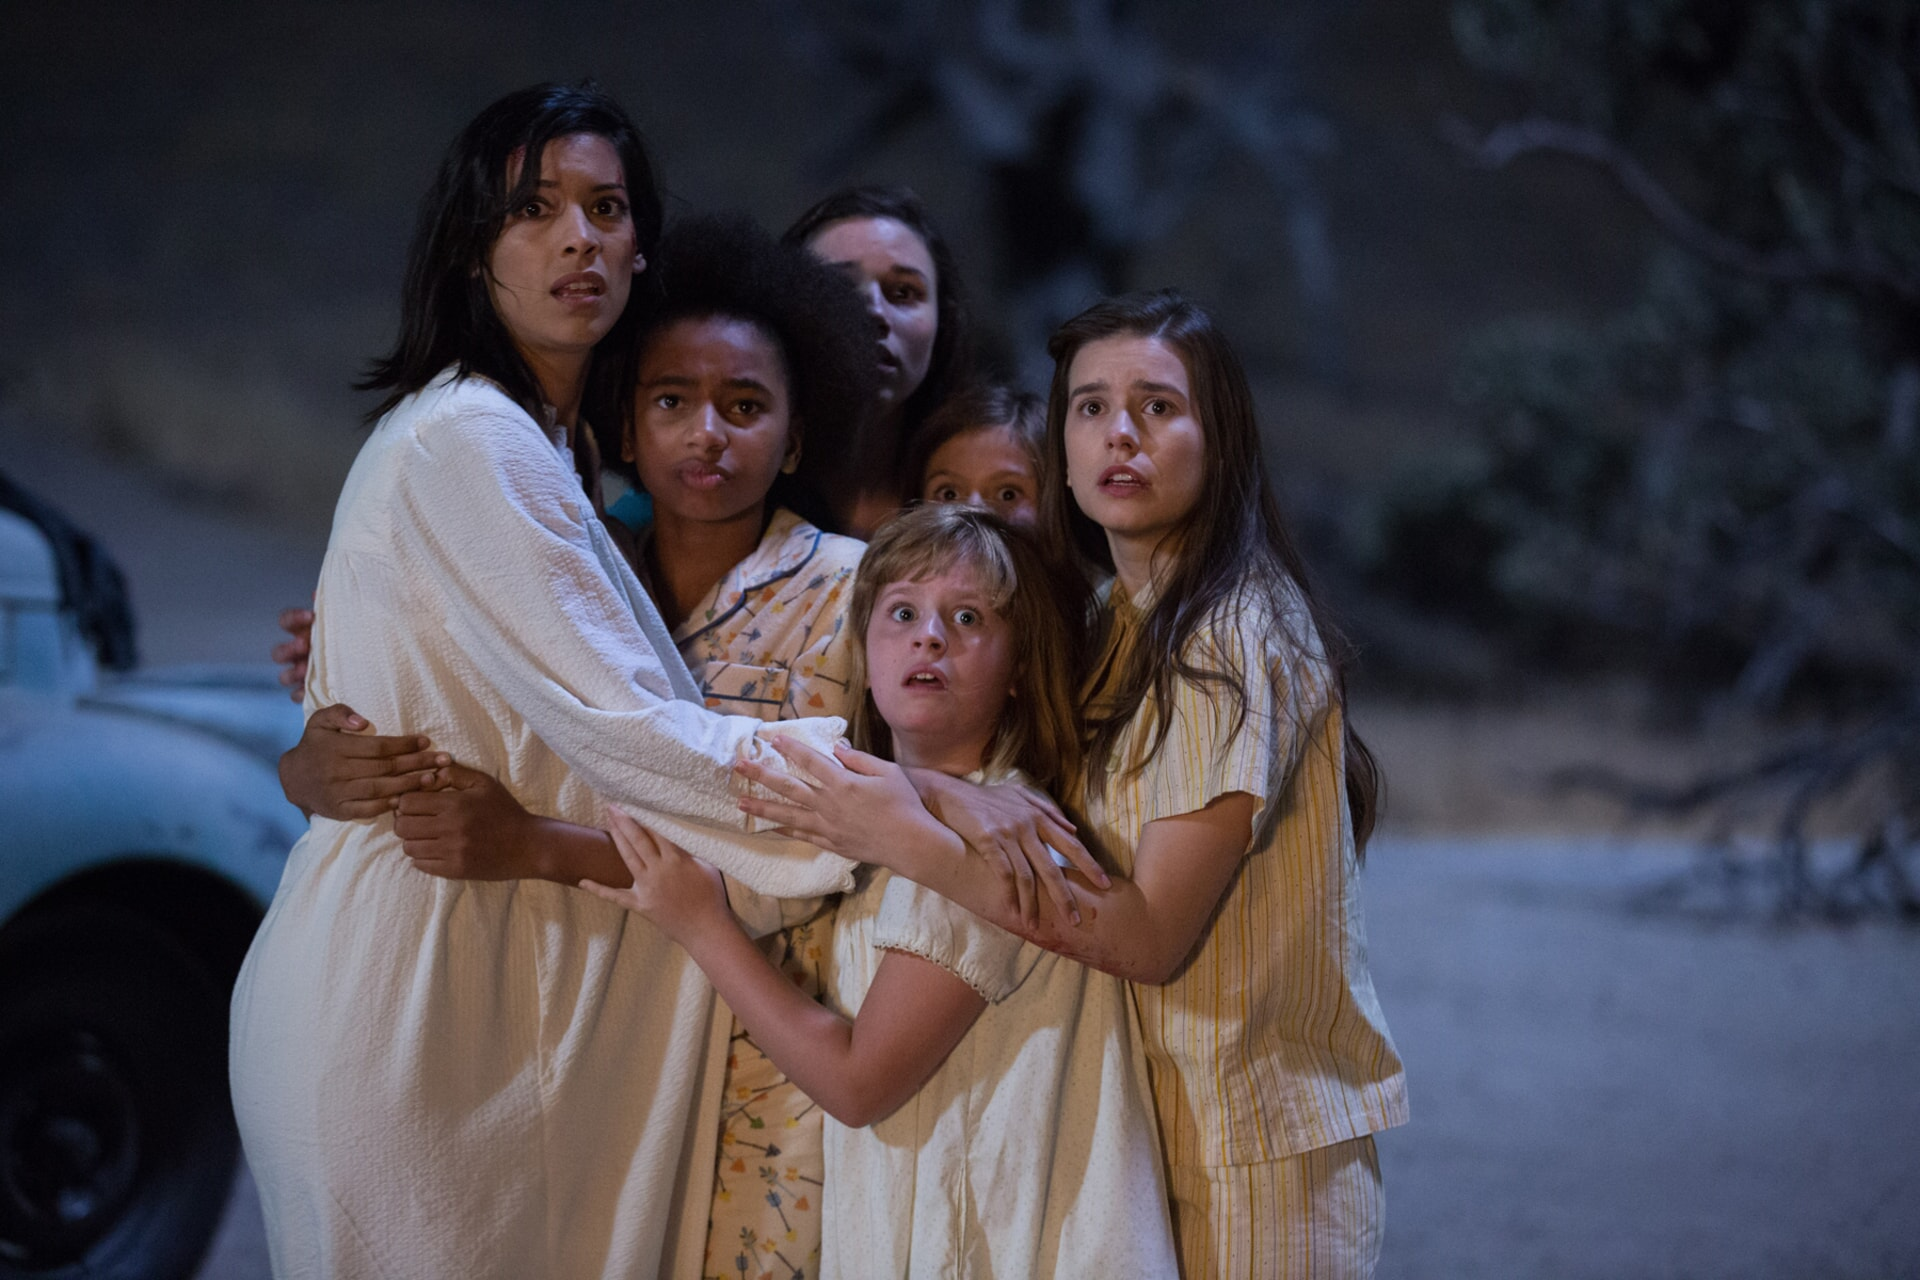 """STEPHANIE SIGMAN as Sister Charlotte, TAYLER BUCK as Kate, GRACE FULTON as Carol, LULU WILSON as Linda, LOU LOU SAFRAN as Tierney and PHILIPPA COULTHARD as Nancy in New Line Cinema's supernatural thriller """"ANNABELLE: CREATION,"""" a Warner Bros. Pictures release."""